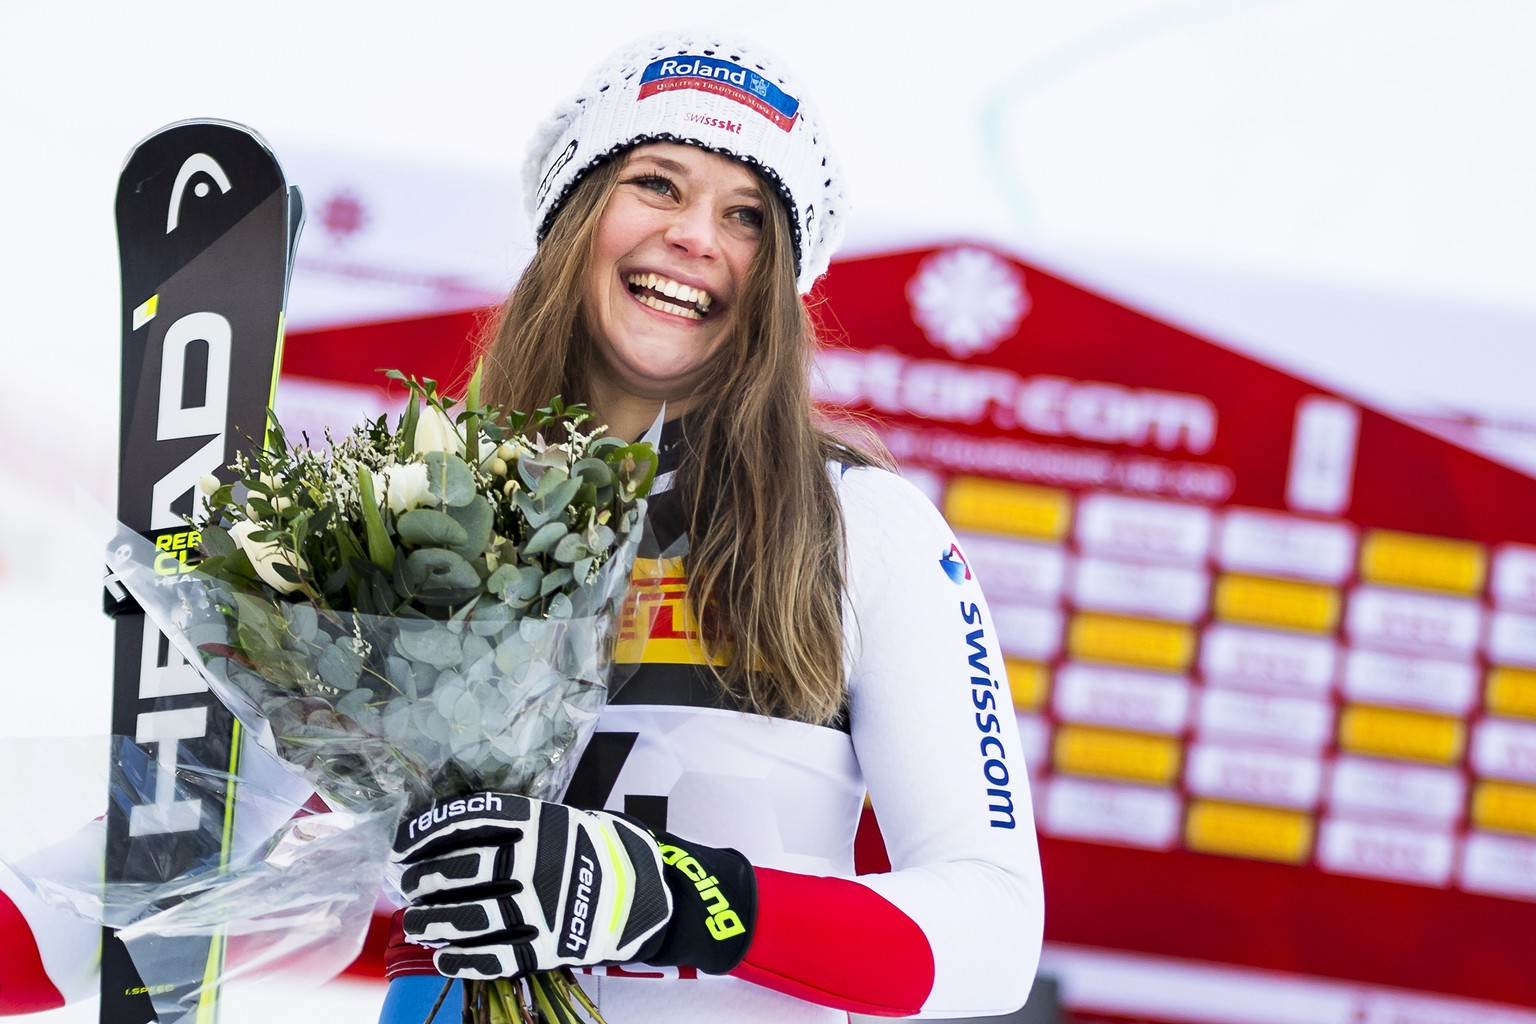 epa07345470 Corinne Suter of Switzerland celebrates in the finish area after taking the third place in the women's Super G race at the 2019 FIS Alpine Skiing World Championships in Are, Sweden, 05 February 2019.  EPA/JEAN-CHRISTOPHE BOTT